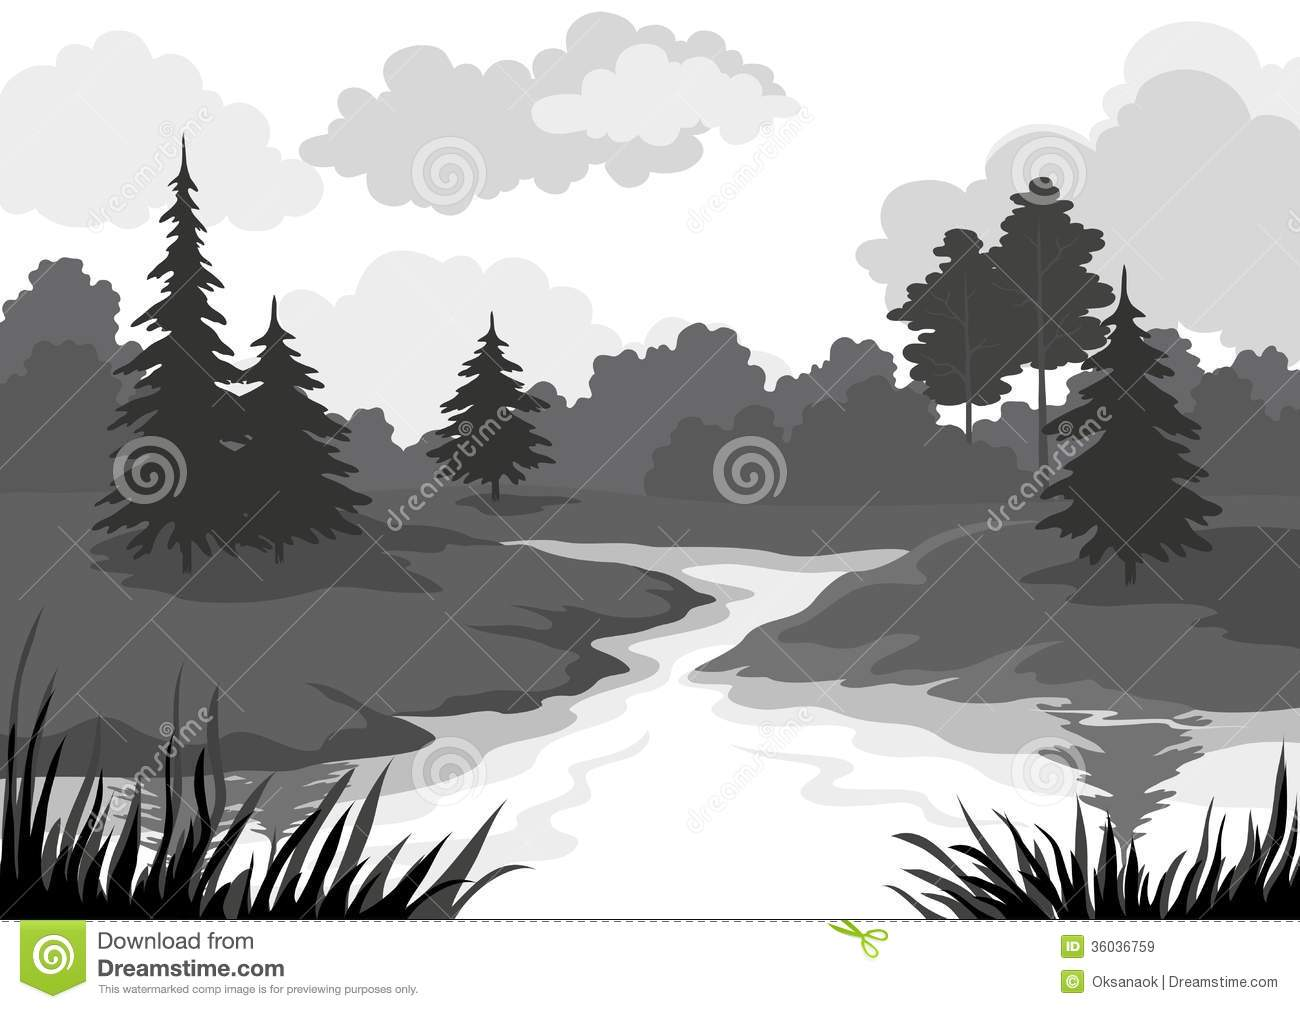 Mountain with trees and road clipart black and white banner transparent library 10+ River Clipart Black And White | ClipartLook banner transparent library